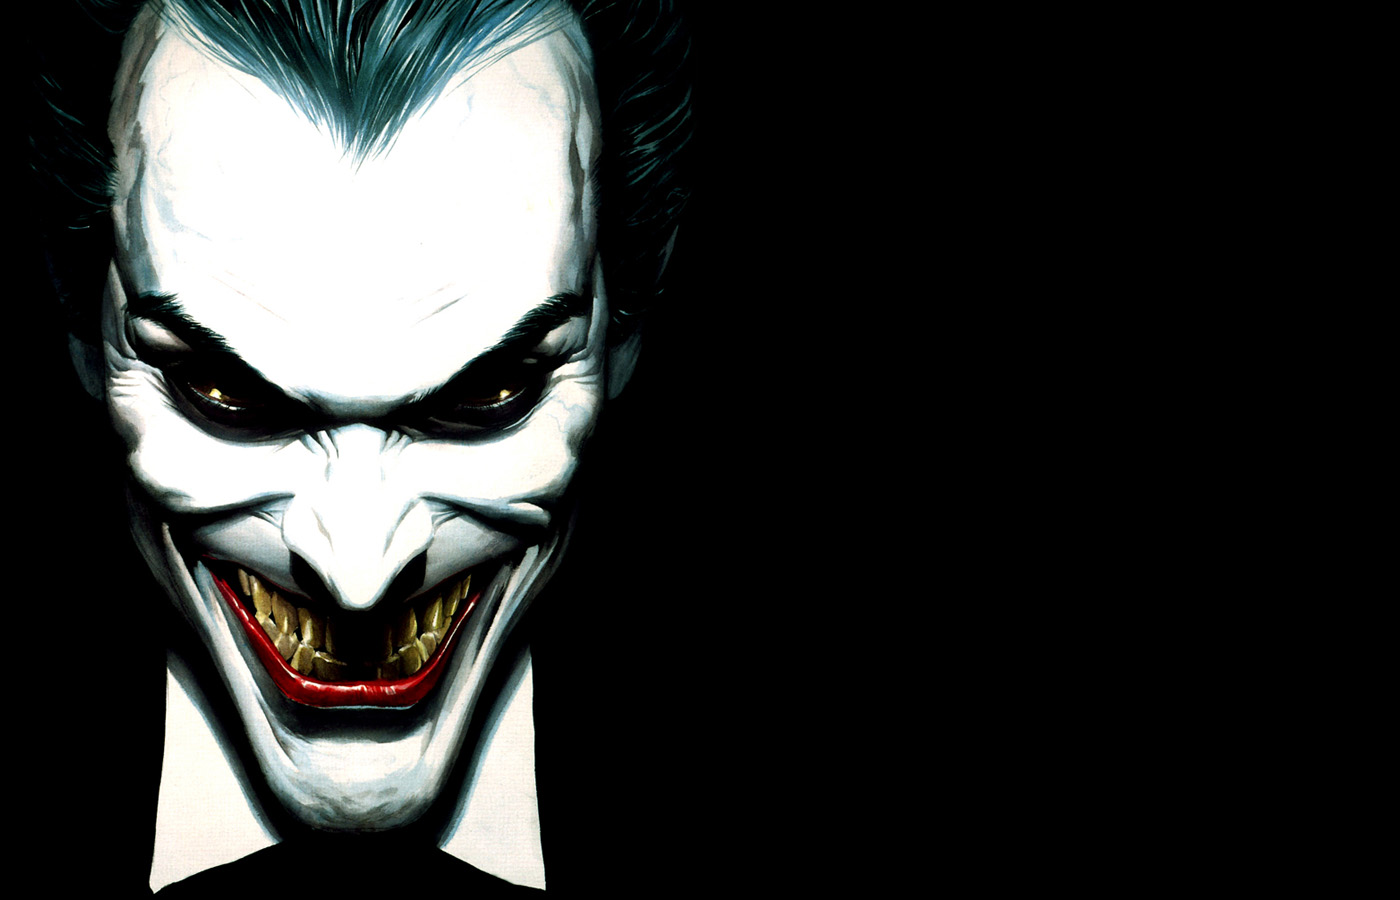 Free Download 1400x900 Joker Face Desktop Pc And Mac Wallpaper 1400x900 For Your Desktop Mobile Tablet Explore 73 Joker Wallpapers Heath Ledger Joker Wallpaper Dark Knight Joker Wallpaper Batman Joker Wallpaper